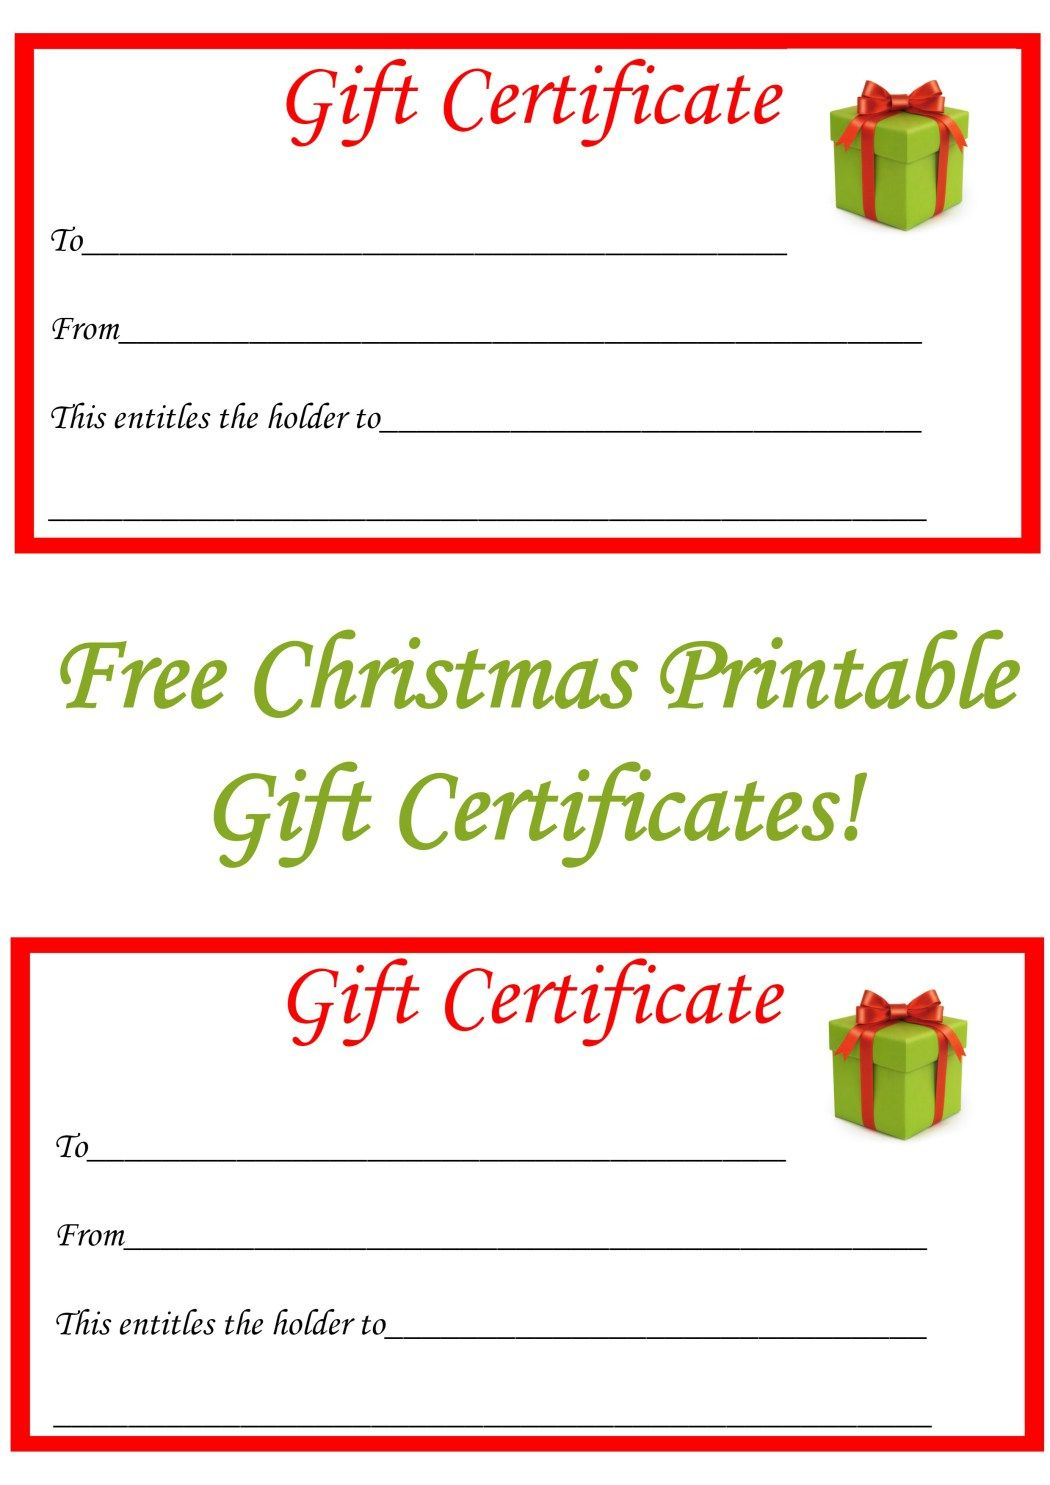 Free Christmas Printable Gift Certificates The Diary Of A Frugal Family Christmas Gift Certificate Template Printable Gift Cards Holiday Gift Certificates